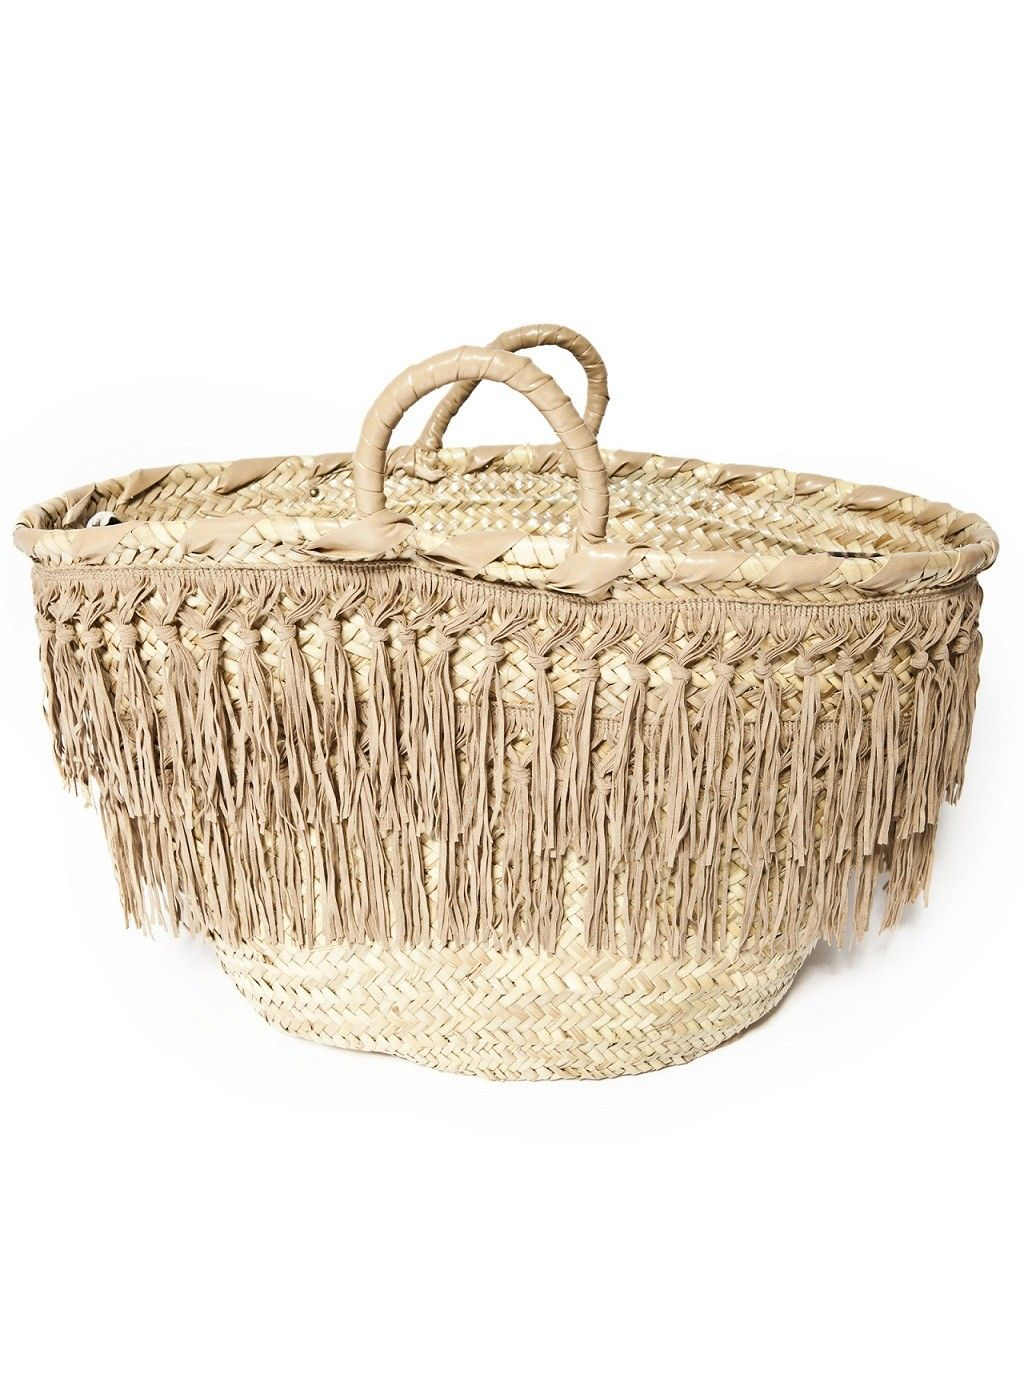 Capogiro Firenze-fringe straw bag | Suite123 selection -SS12 ...